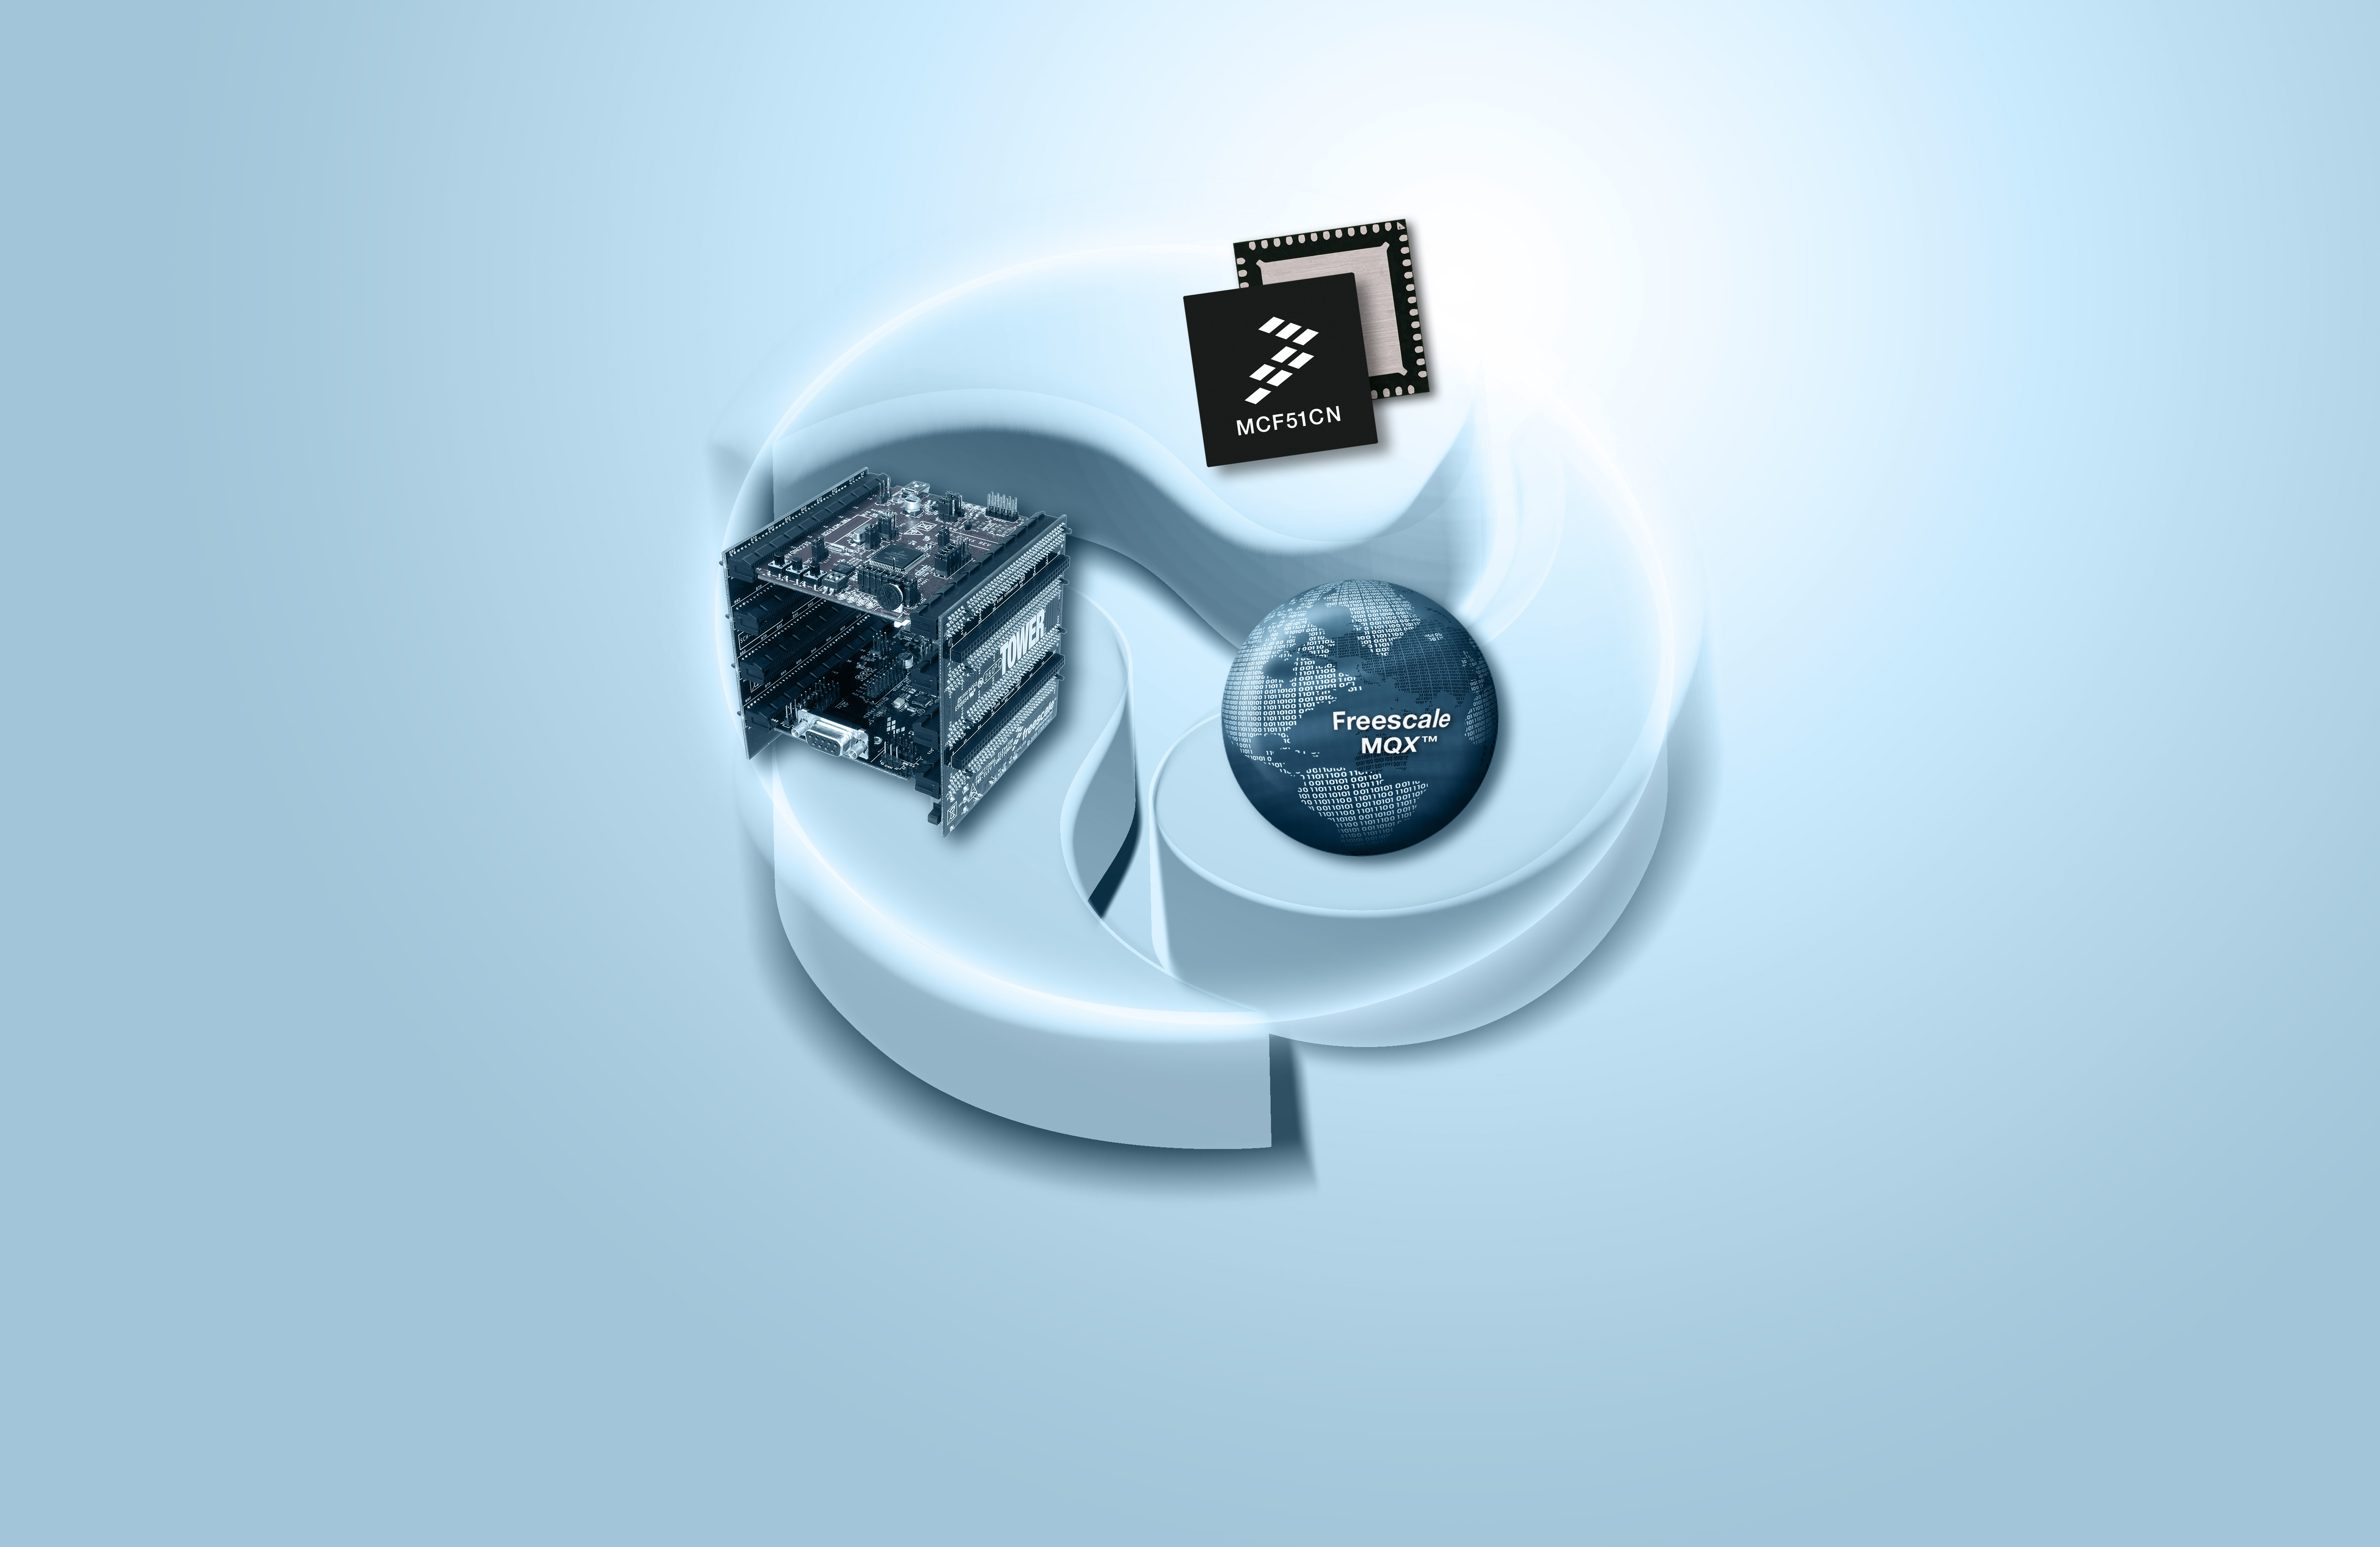 Welcome To Freescale Semiconductor News Release Battery Backup For Sram Or Microcontroller Mcf51cn Coldfire The Ultimate Ethernet Connectivity Solution